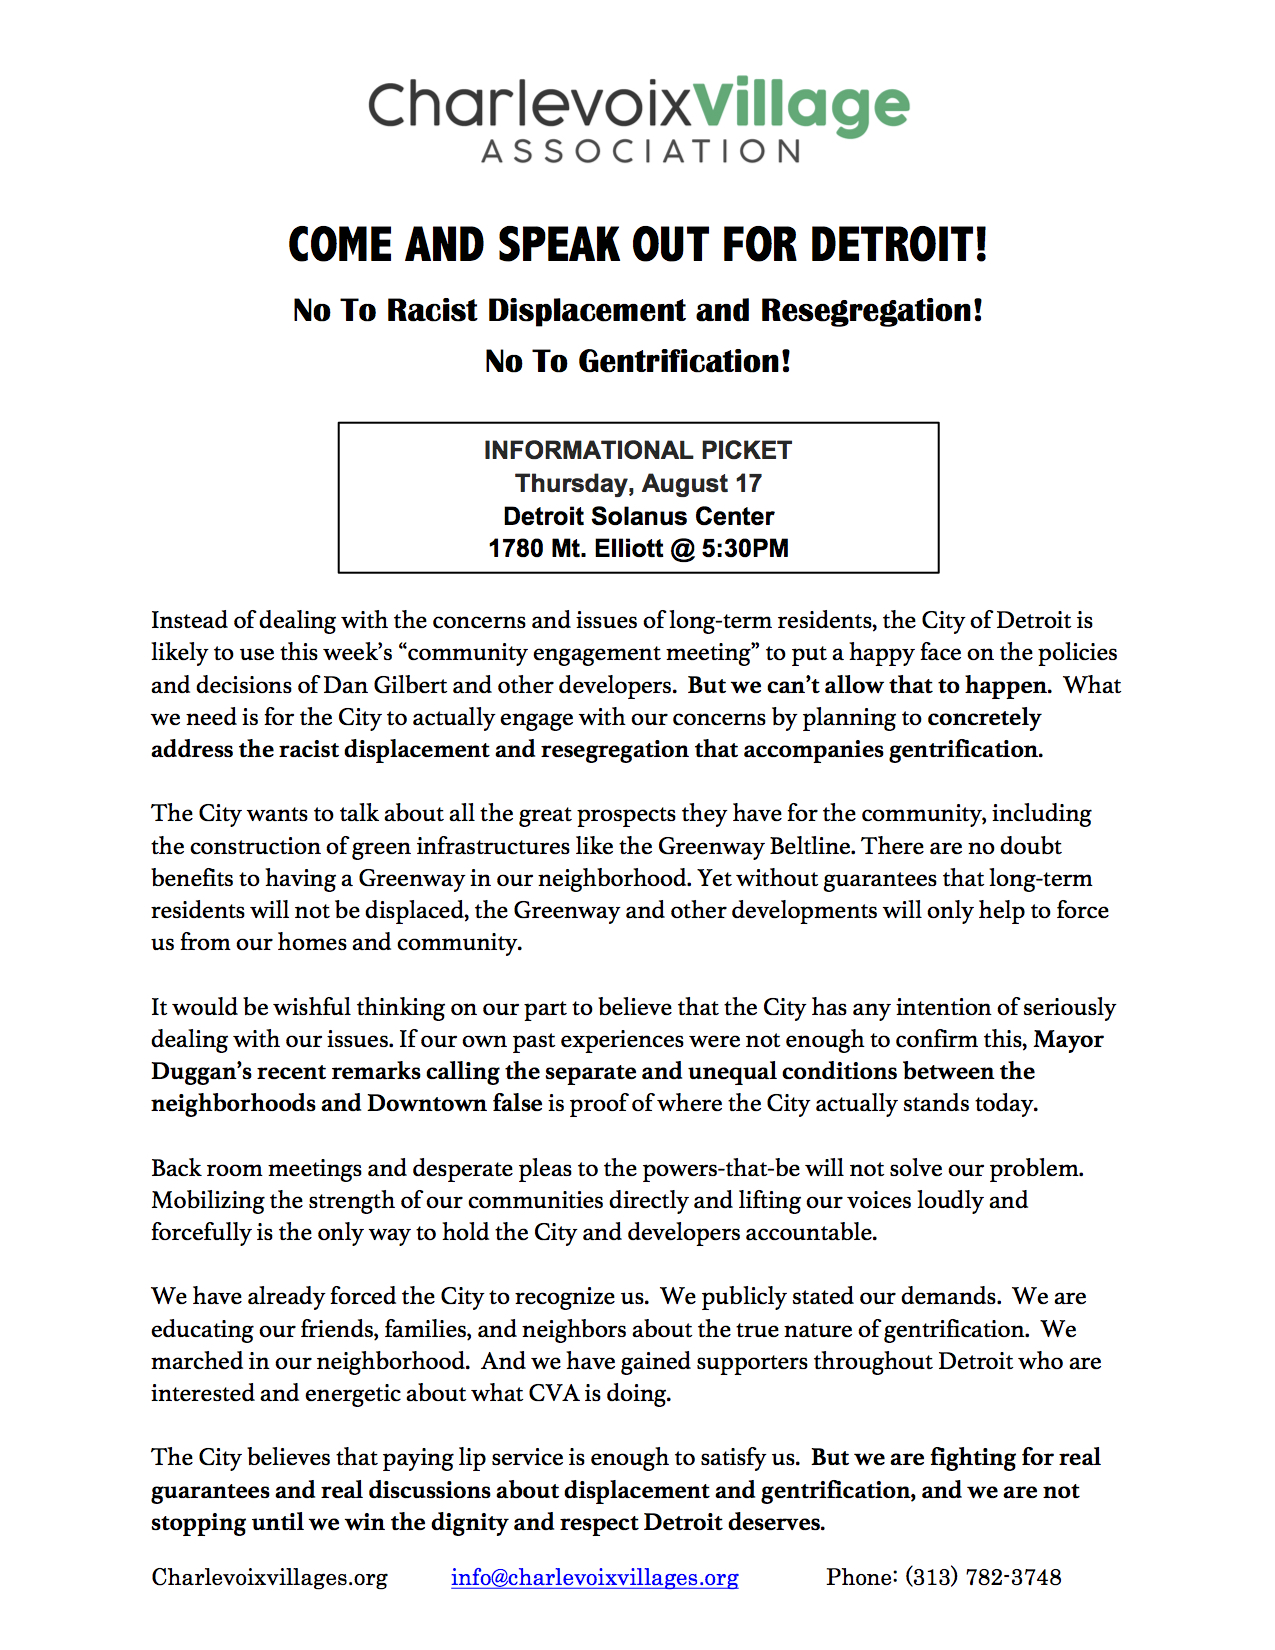 come-and-speak-out-for-detroit_8-17-17-v2